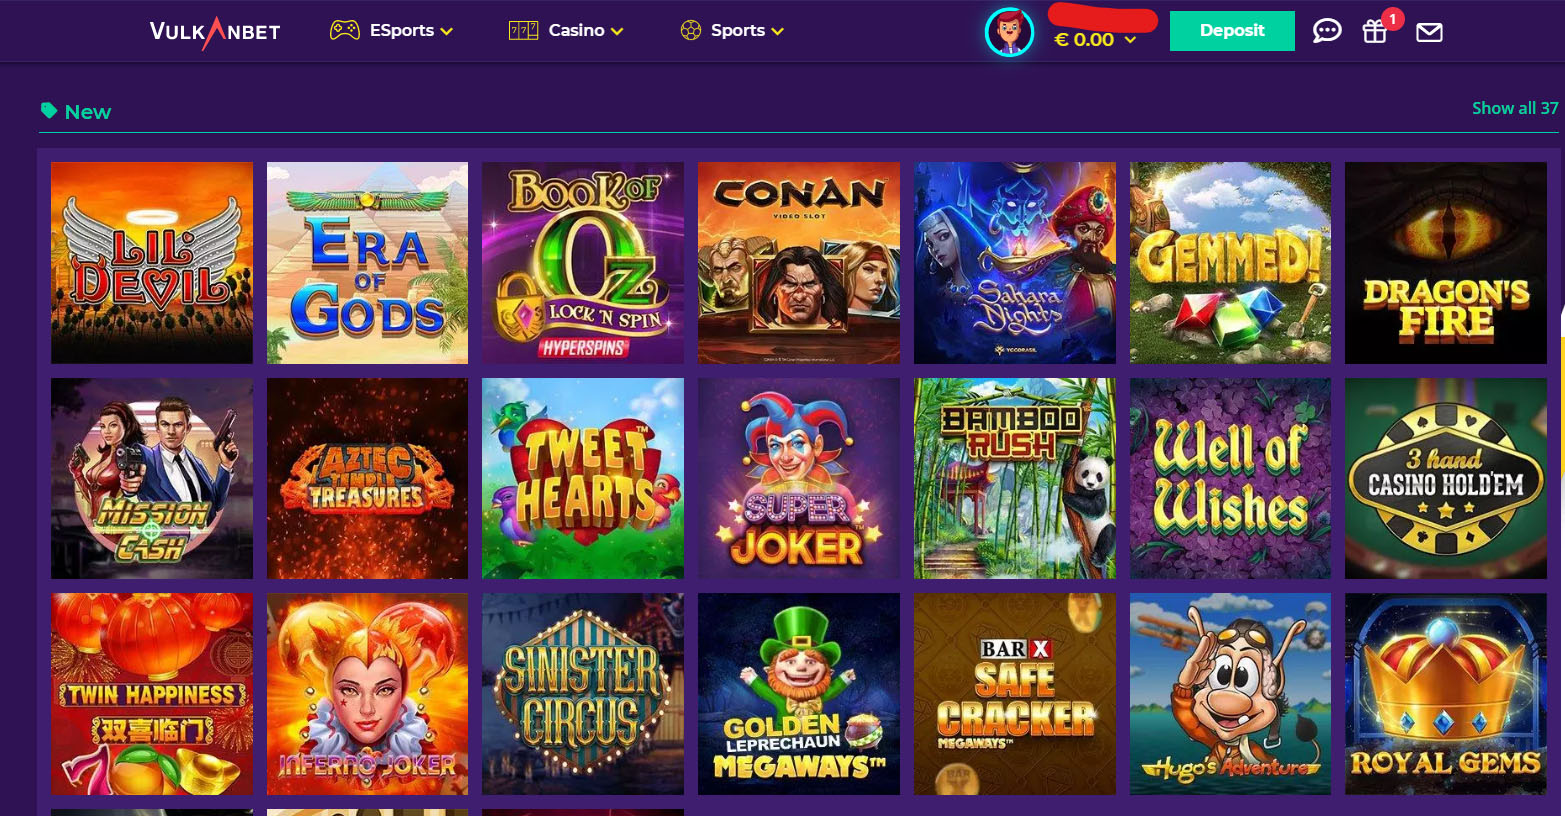 Vegas slot machines with best odds